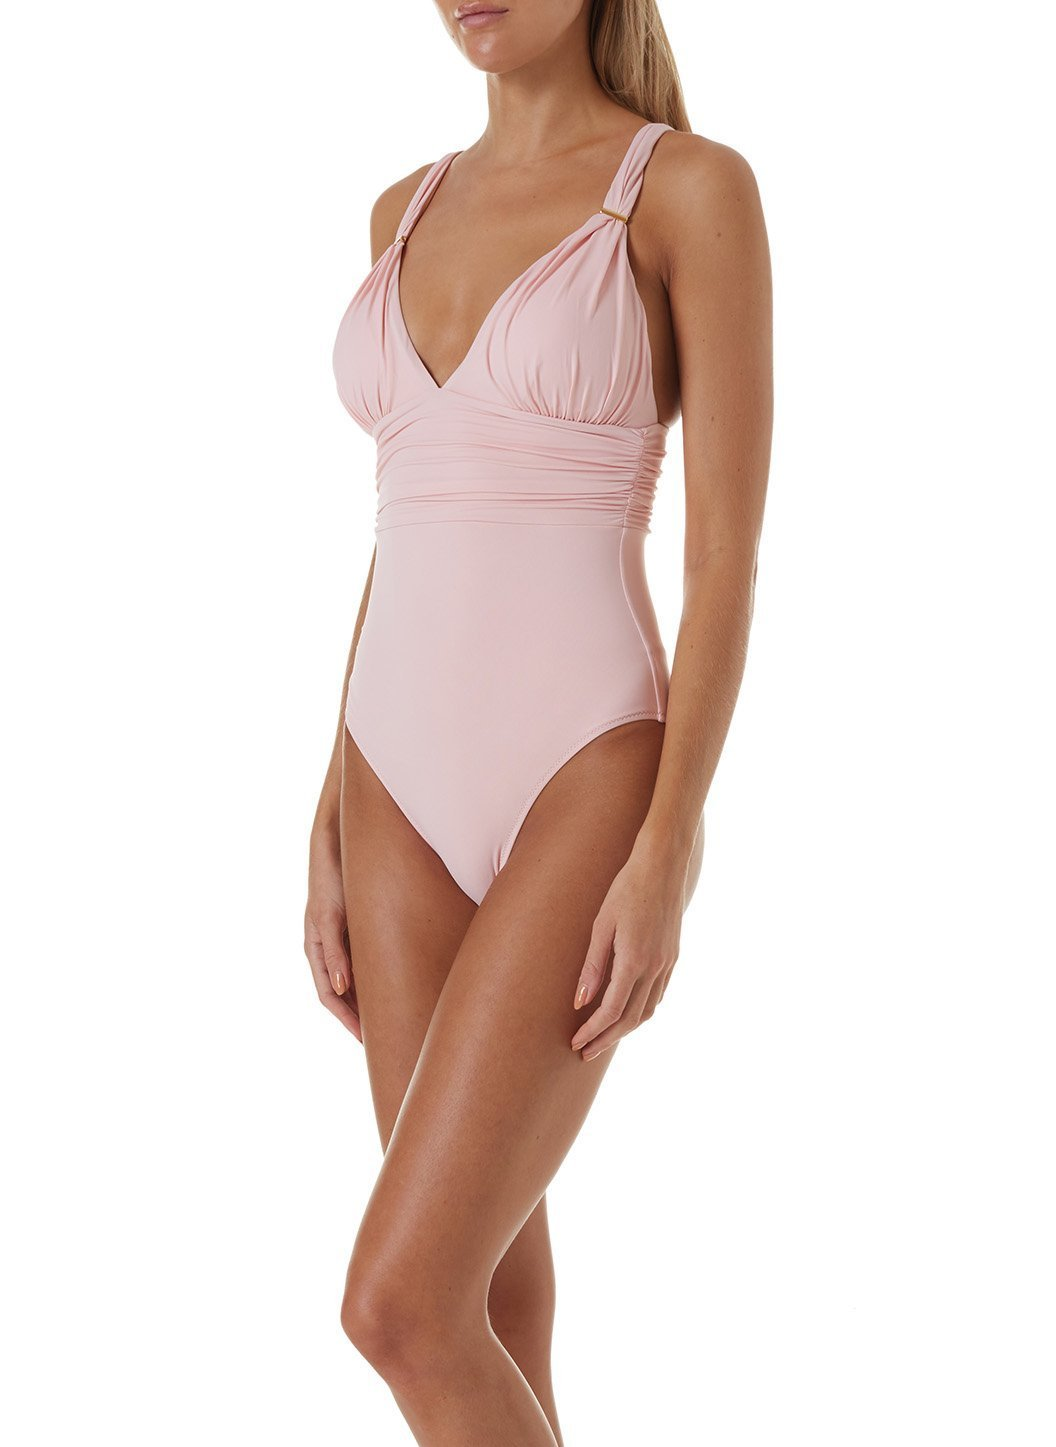 panarea blush swimsuit